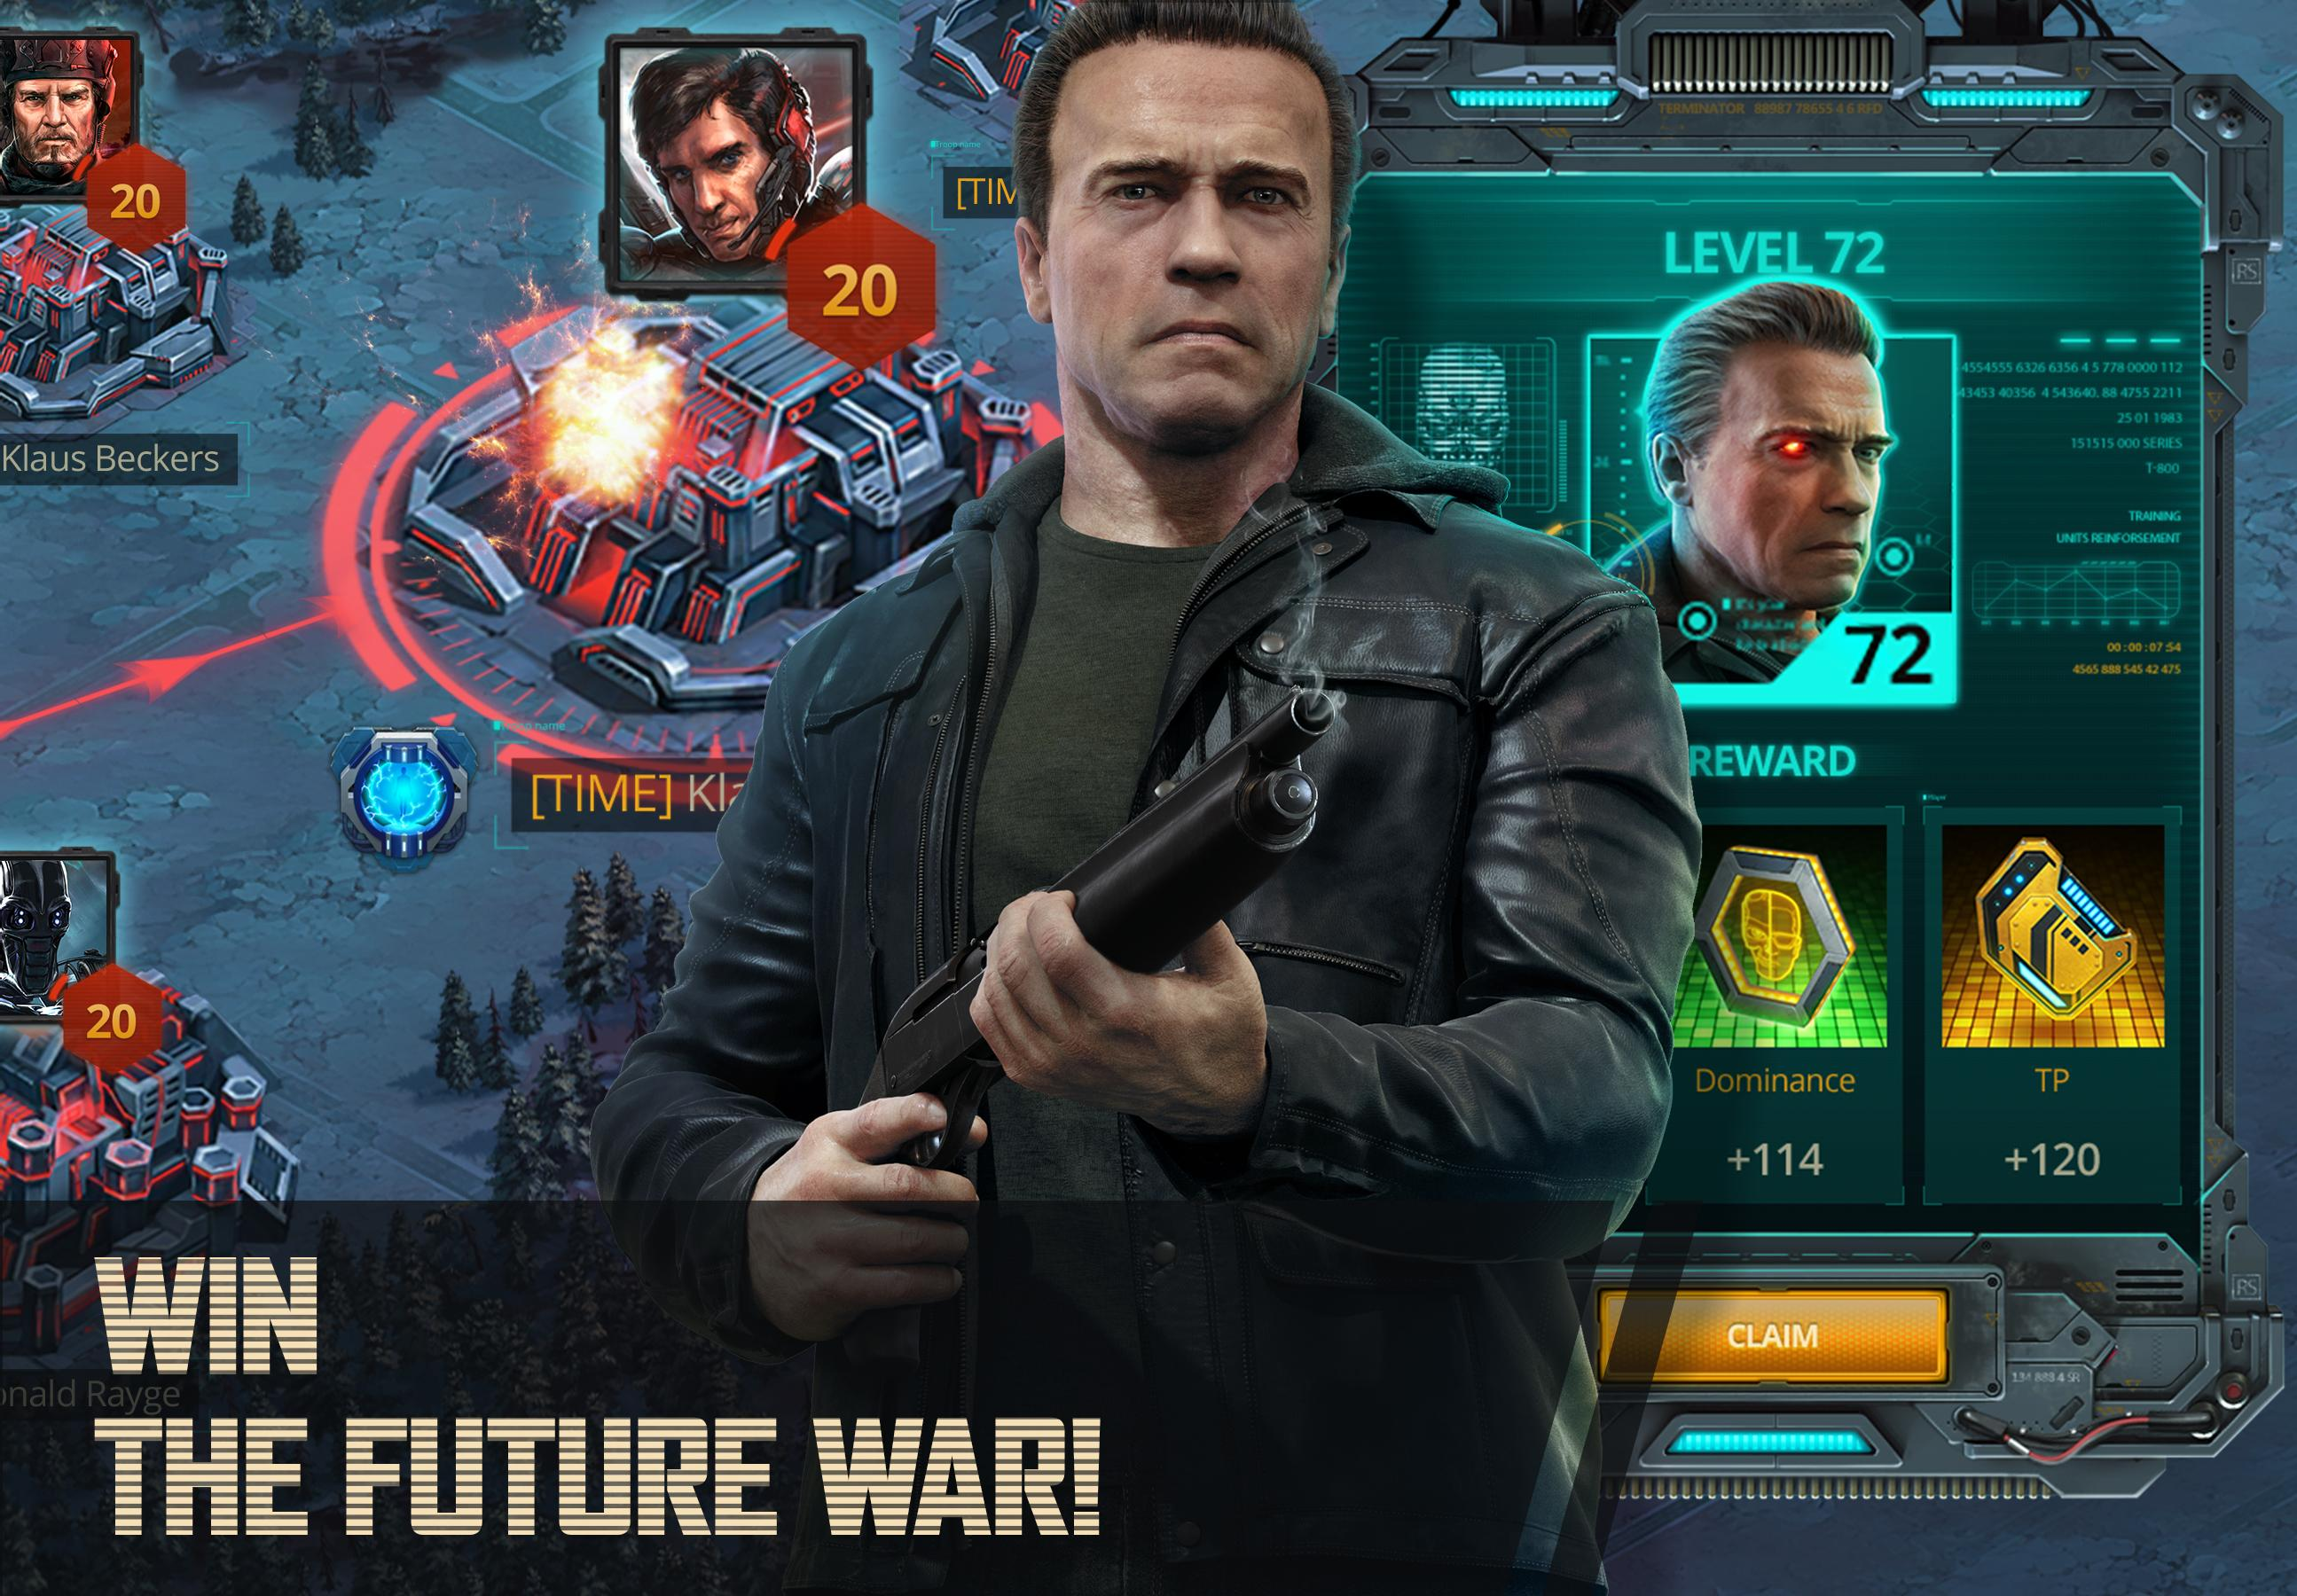 Terminator Genisys: Future War 1.9.3.274 Screenshot 11